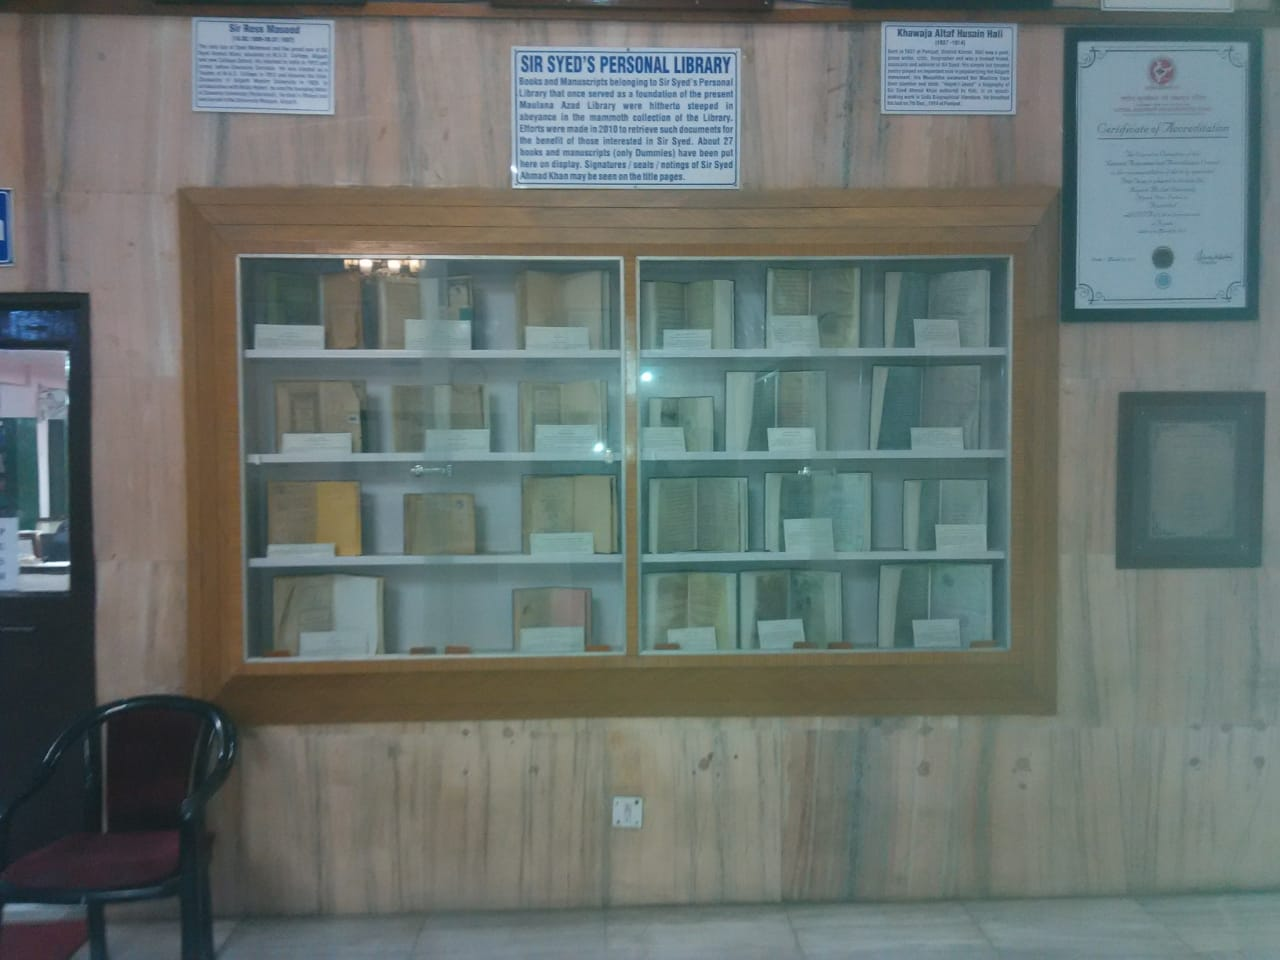 Sir Syed's Personal Library